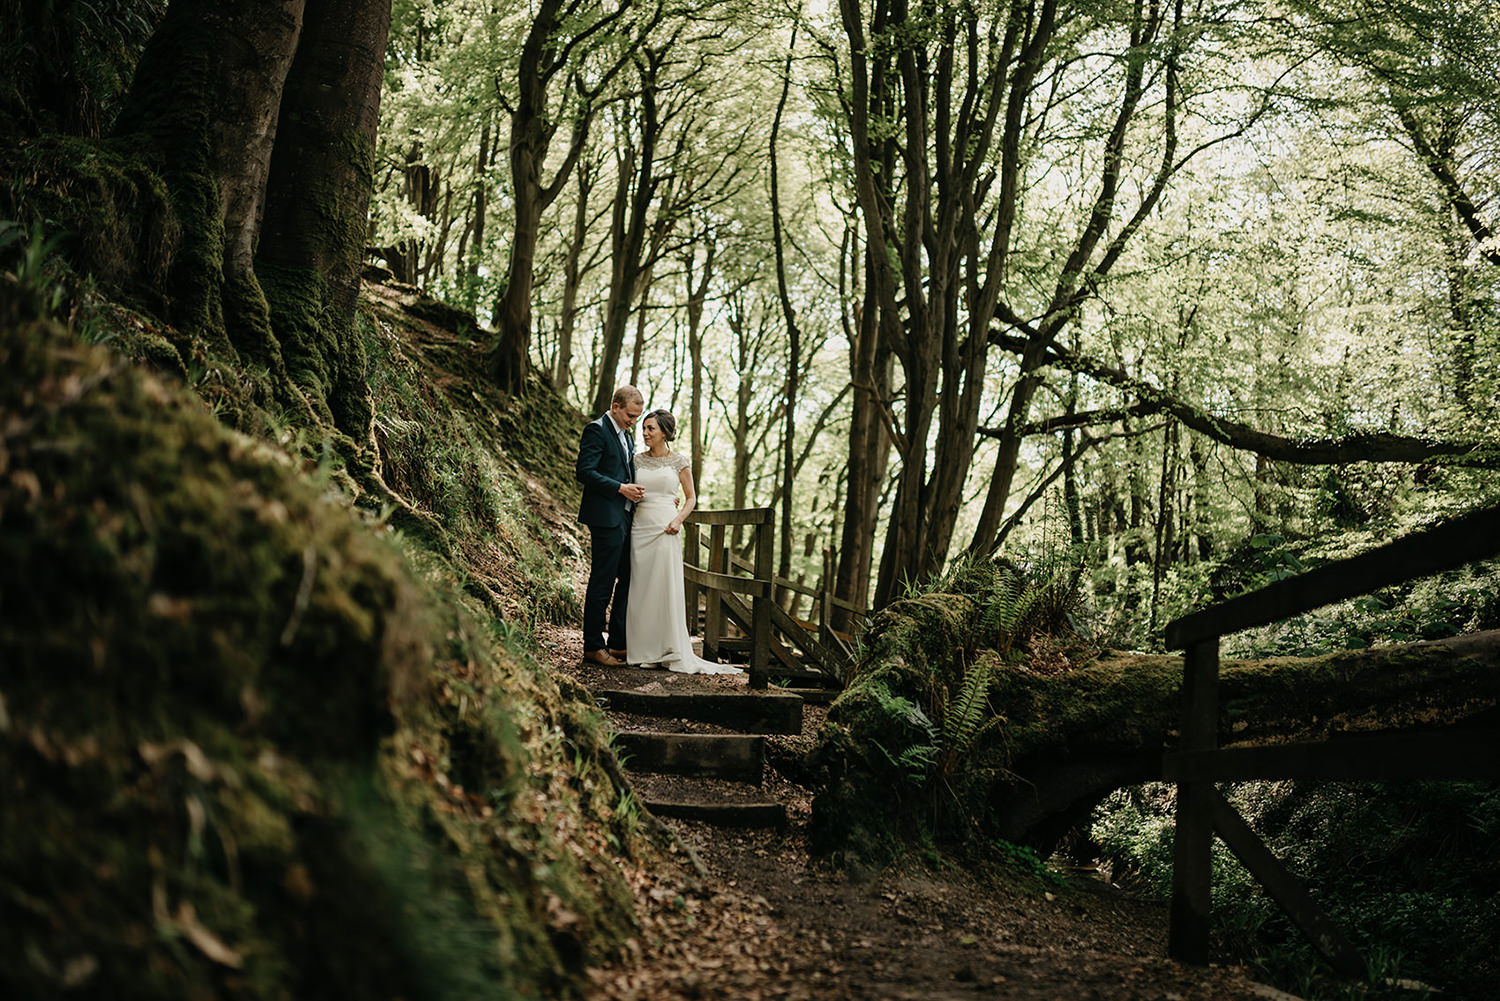 They asked me to find a leafy forest location nearby Douglas Registry Office for their photos.